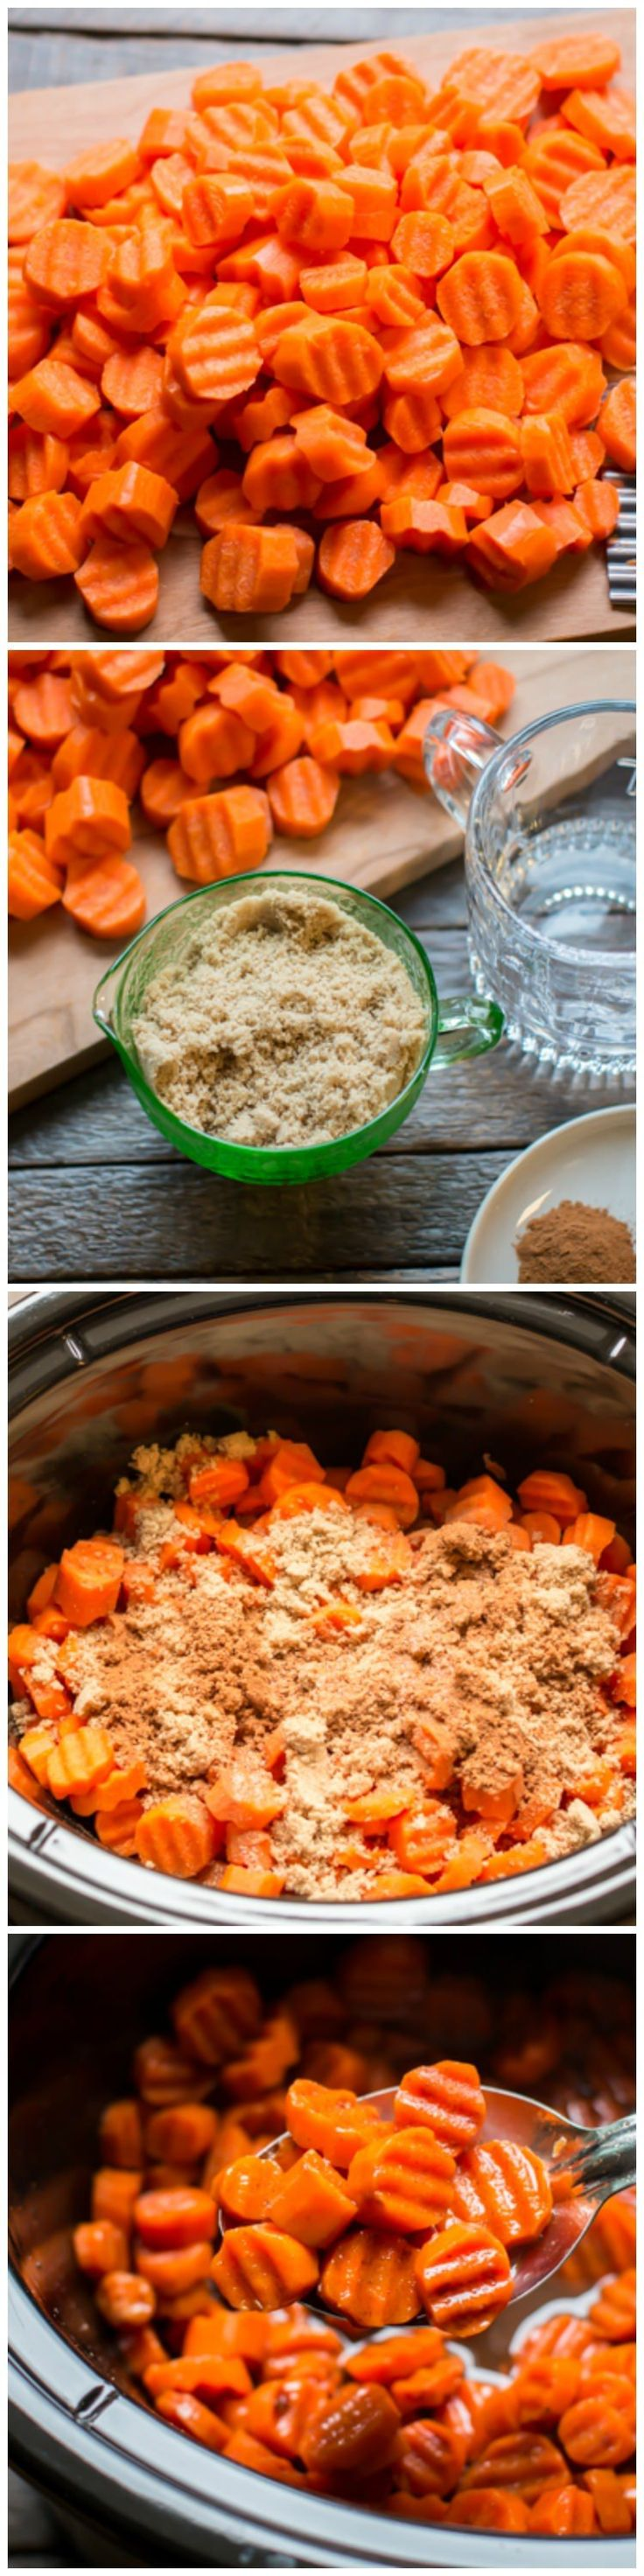 Slow Cooker Candied Carrots. A perfect holiday side dish!